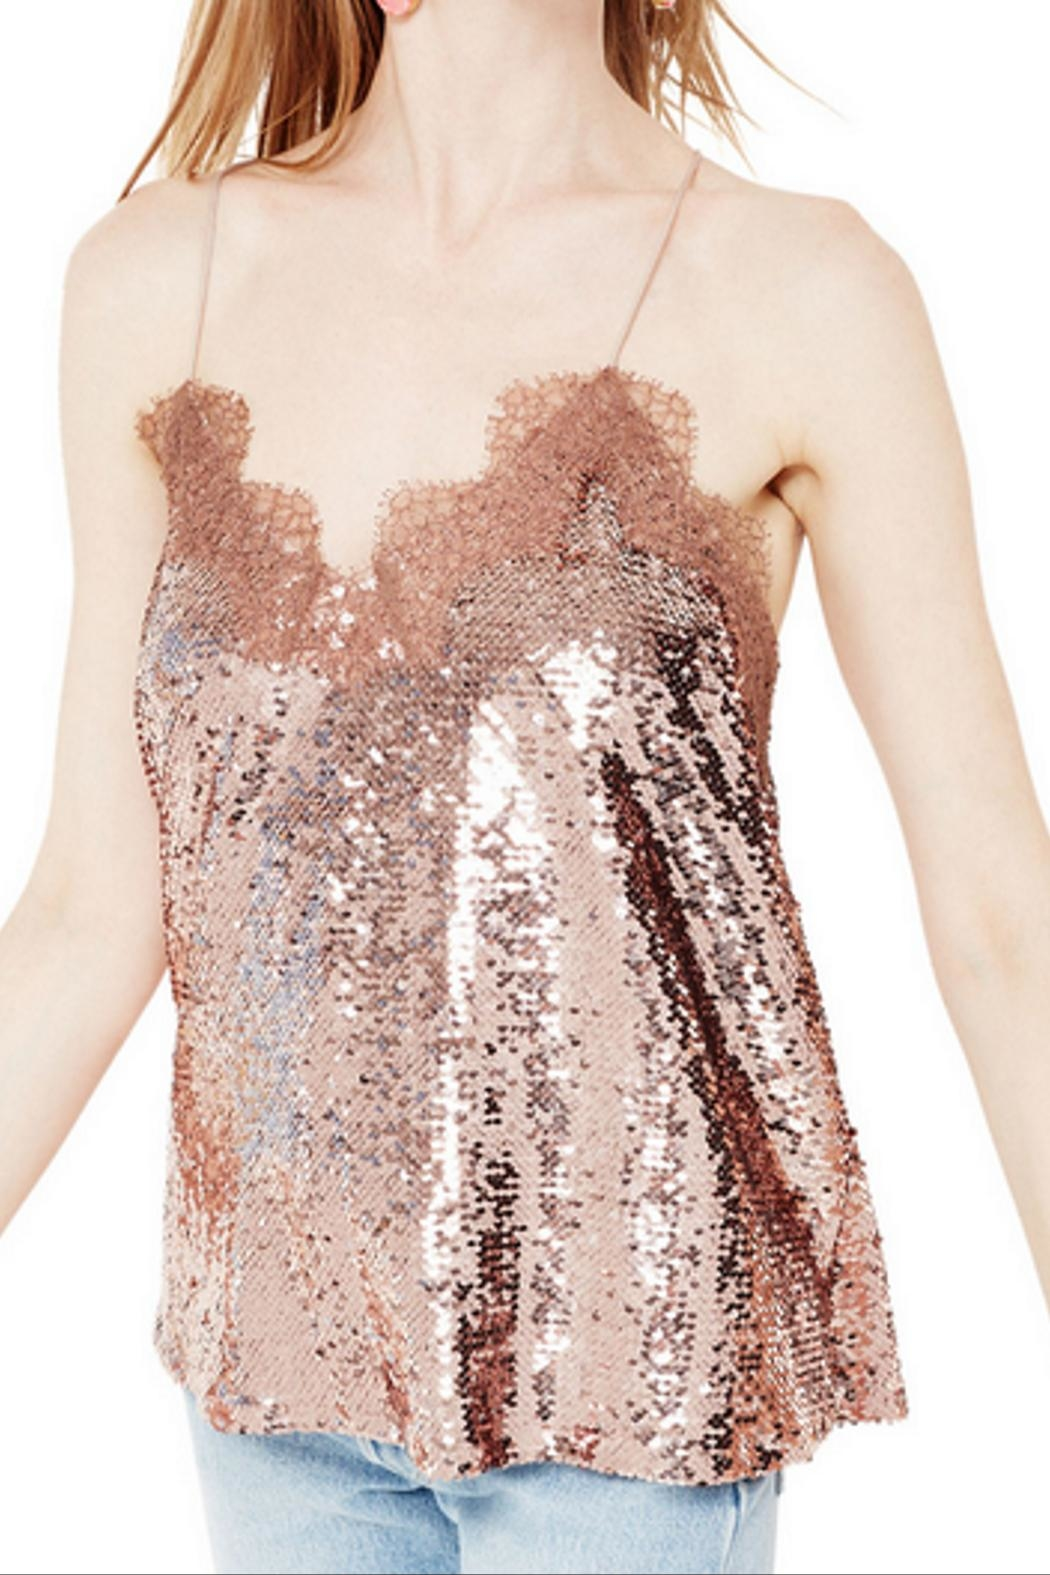 Cami NYC Racer Sequin Top - Main Image